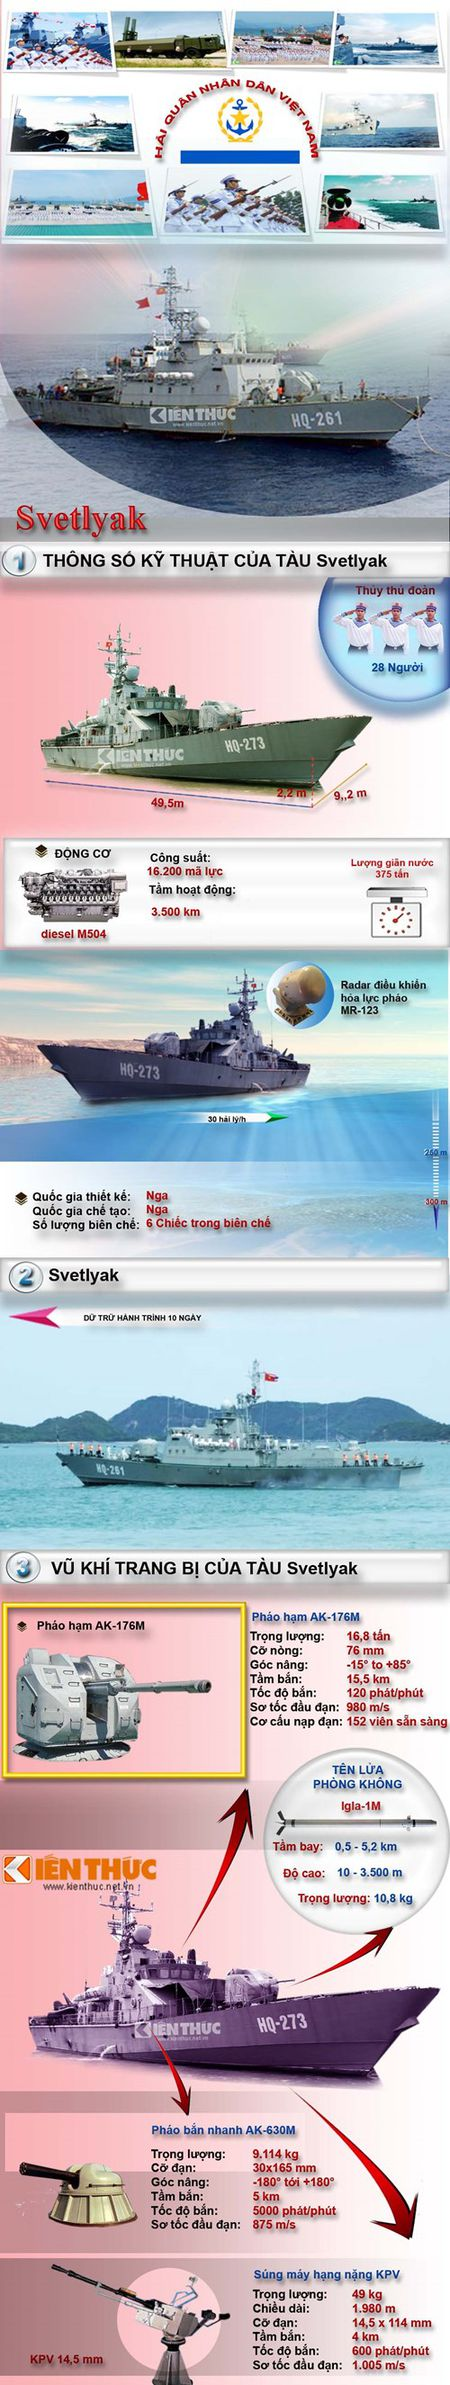 Infographic: Tau phao Project 10412 cua Viet Nam manh co nao? - Anh 1